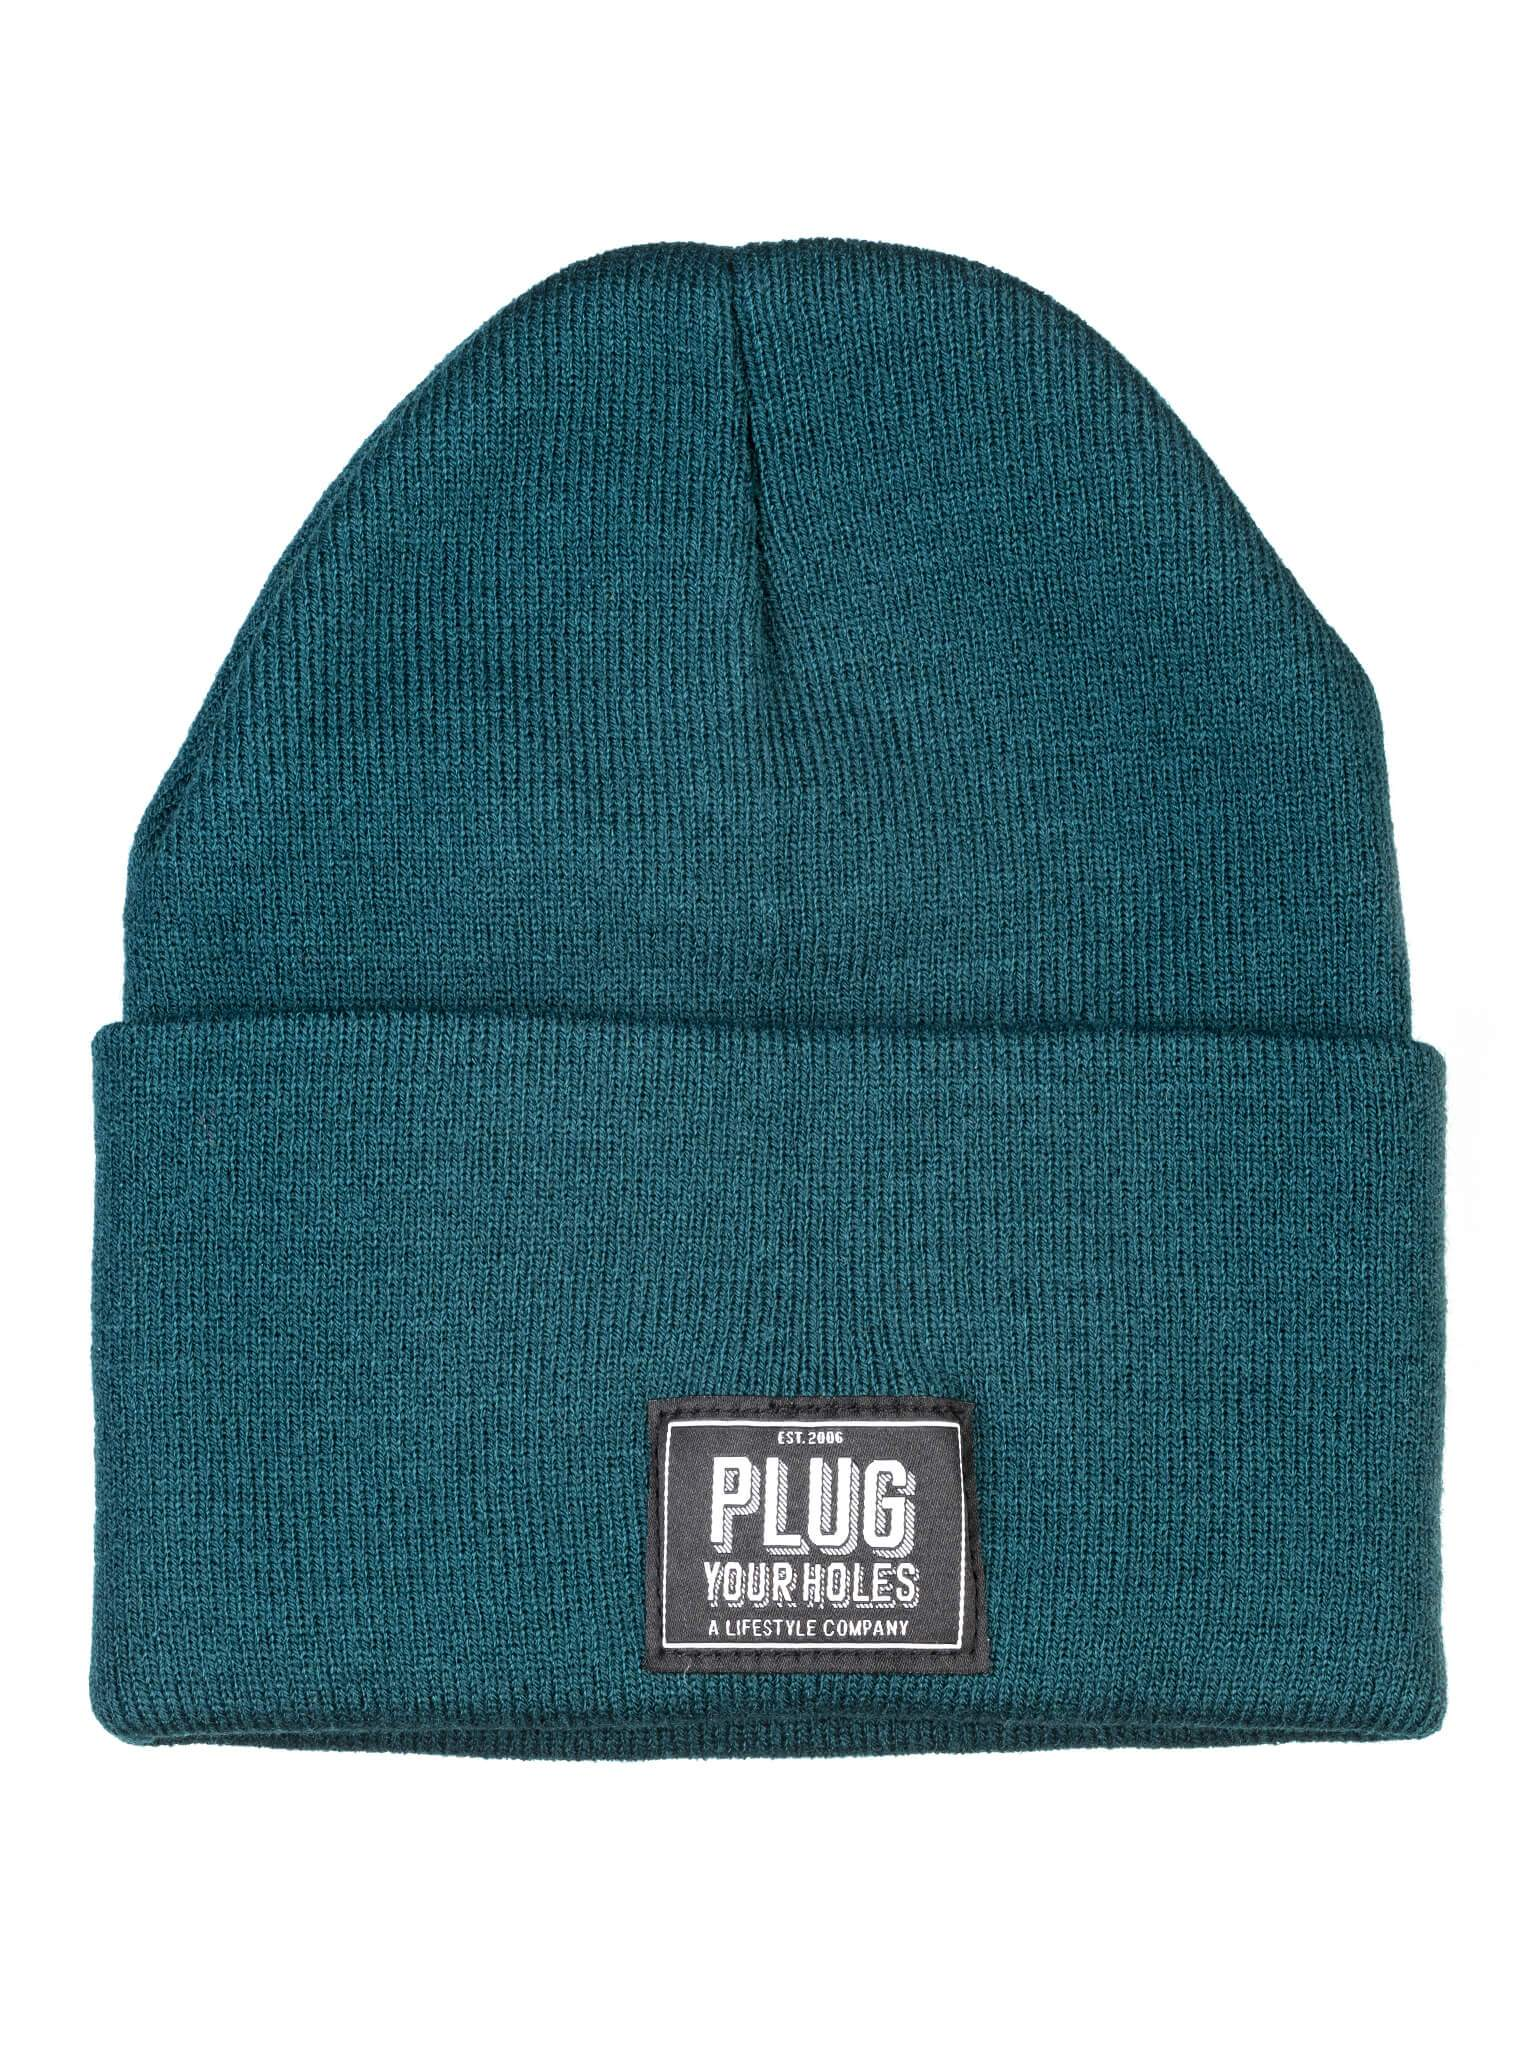 Plug Your Holes Hunter Green Knit Beanie